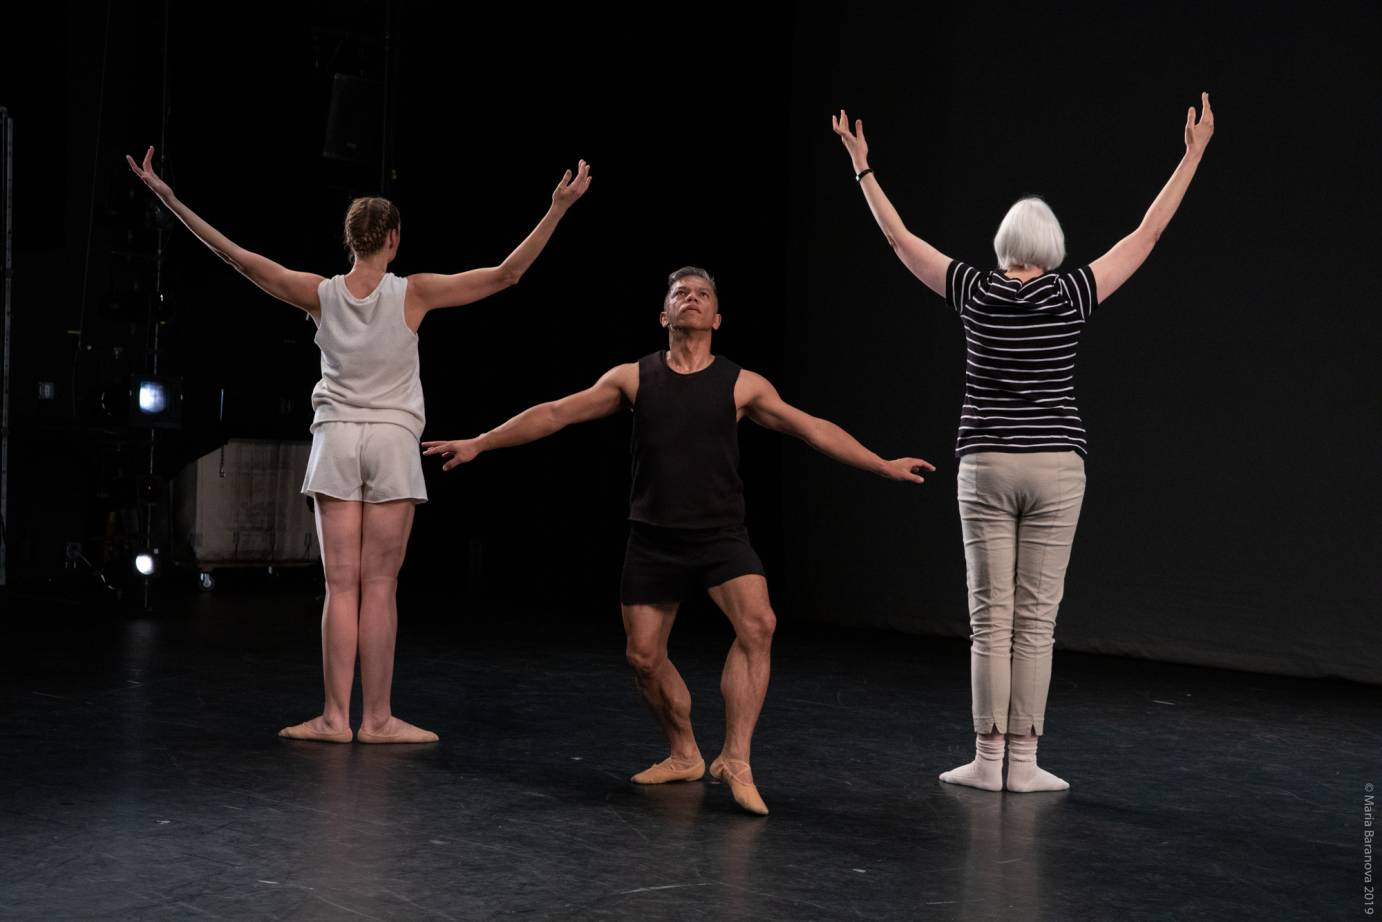 Two women extend their arms in high Vs, backs to audience, while one man extends his arms in a low V